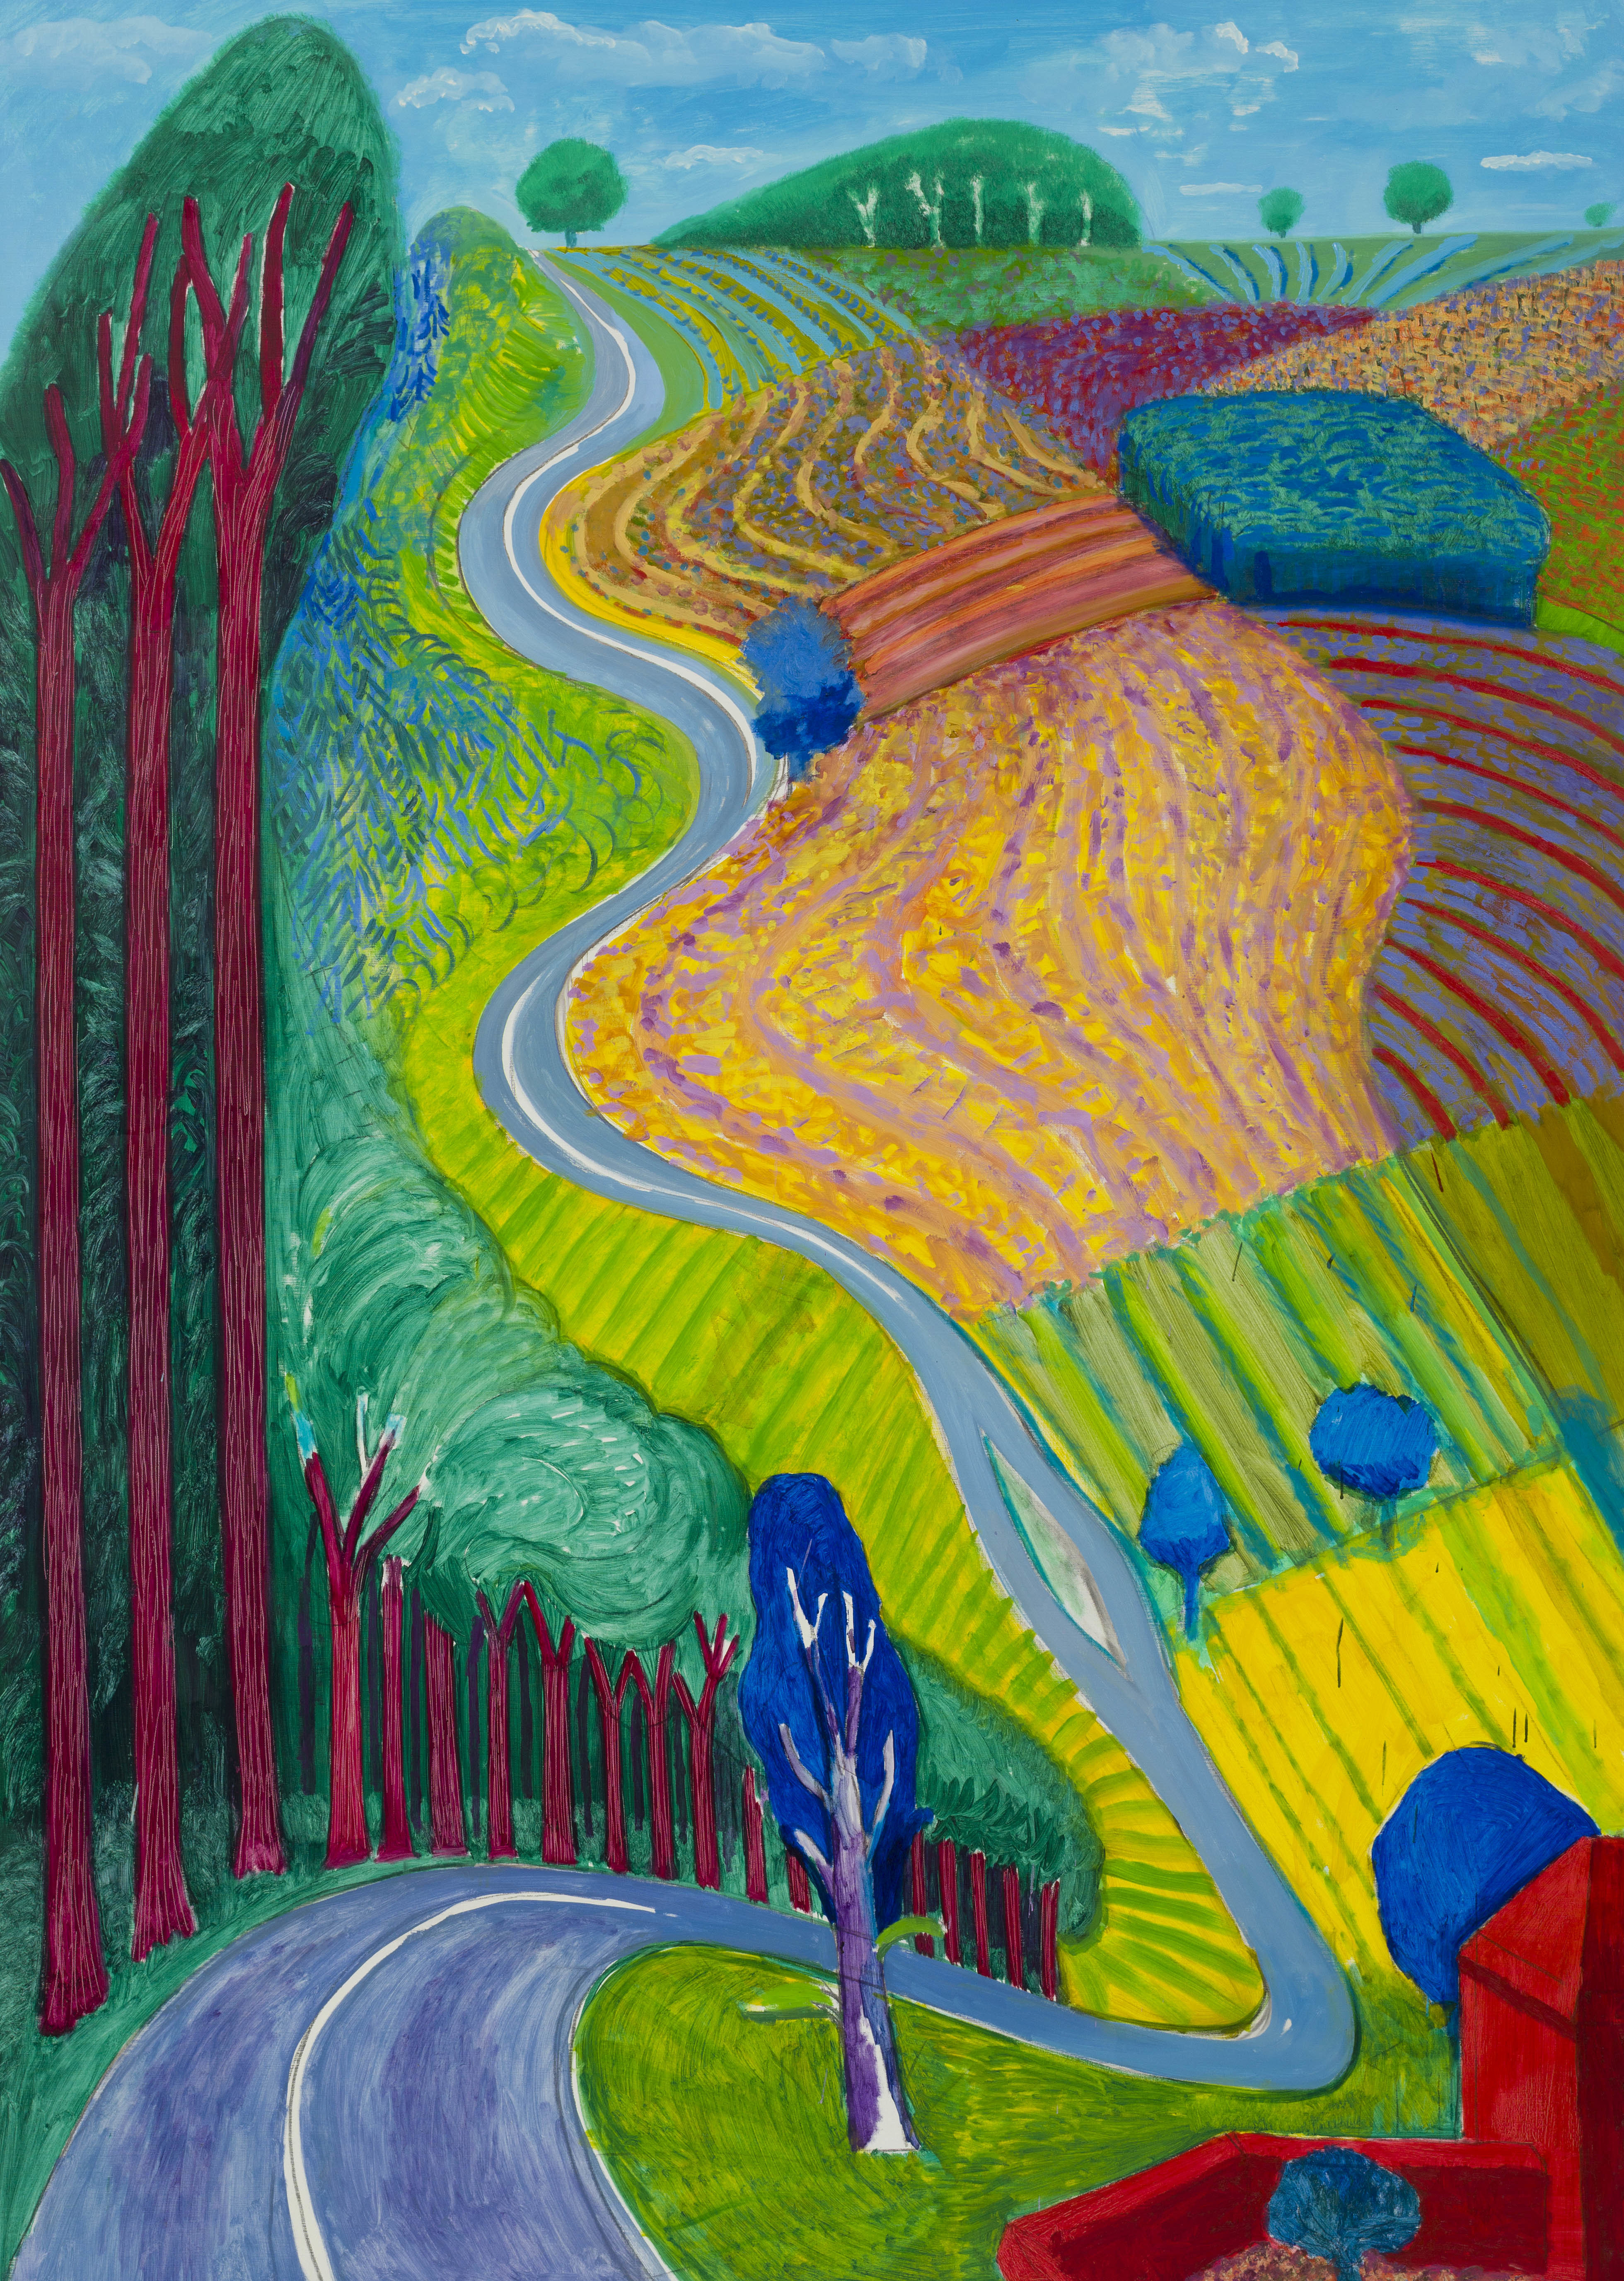 At 79, David Hockney Isn't Keen On Parties, But Still Paints Every Day